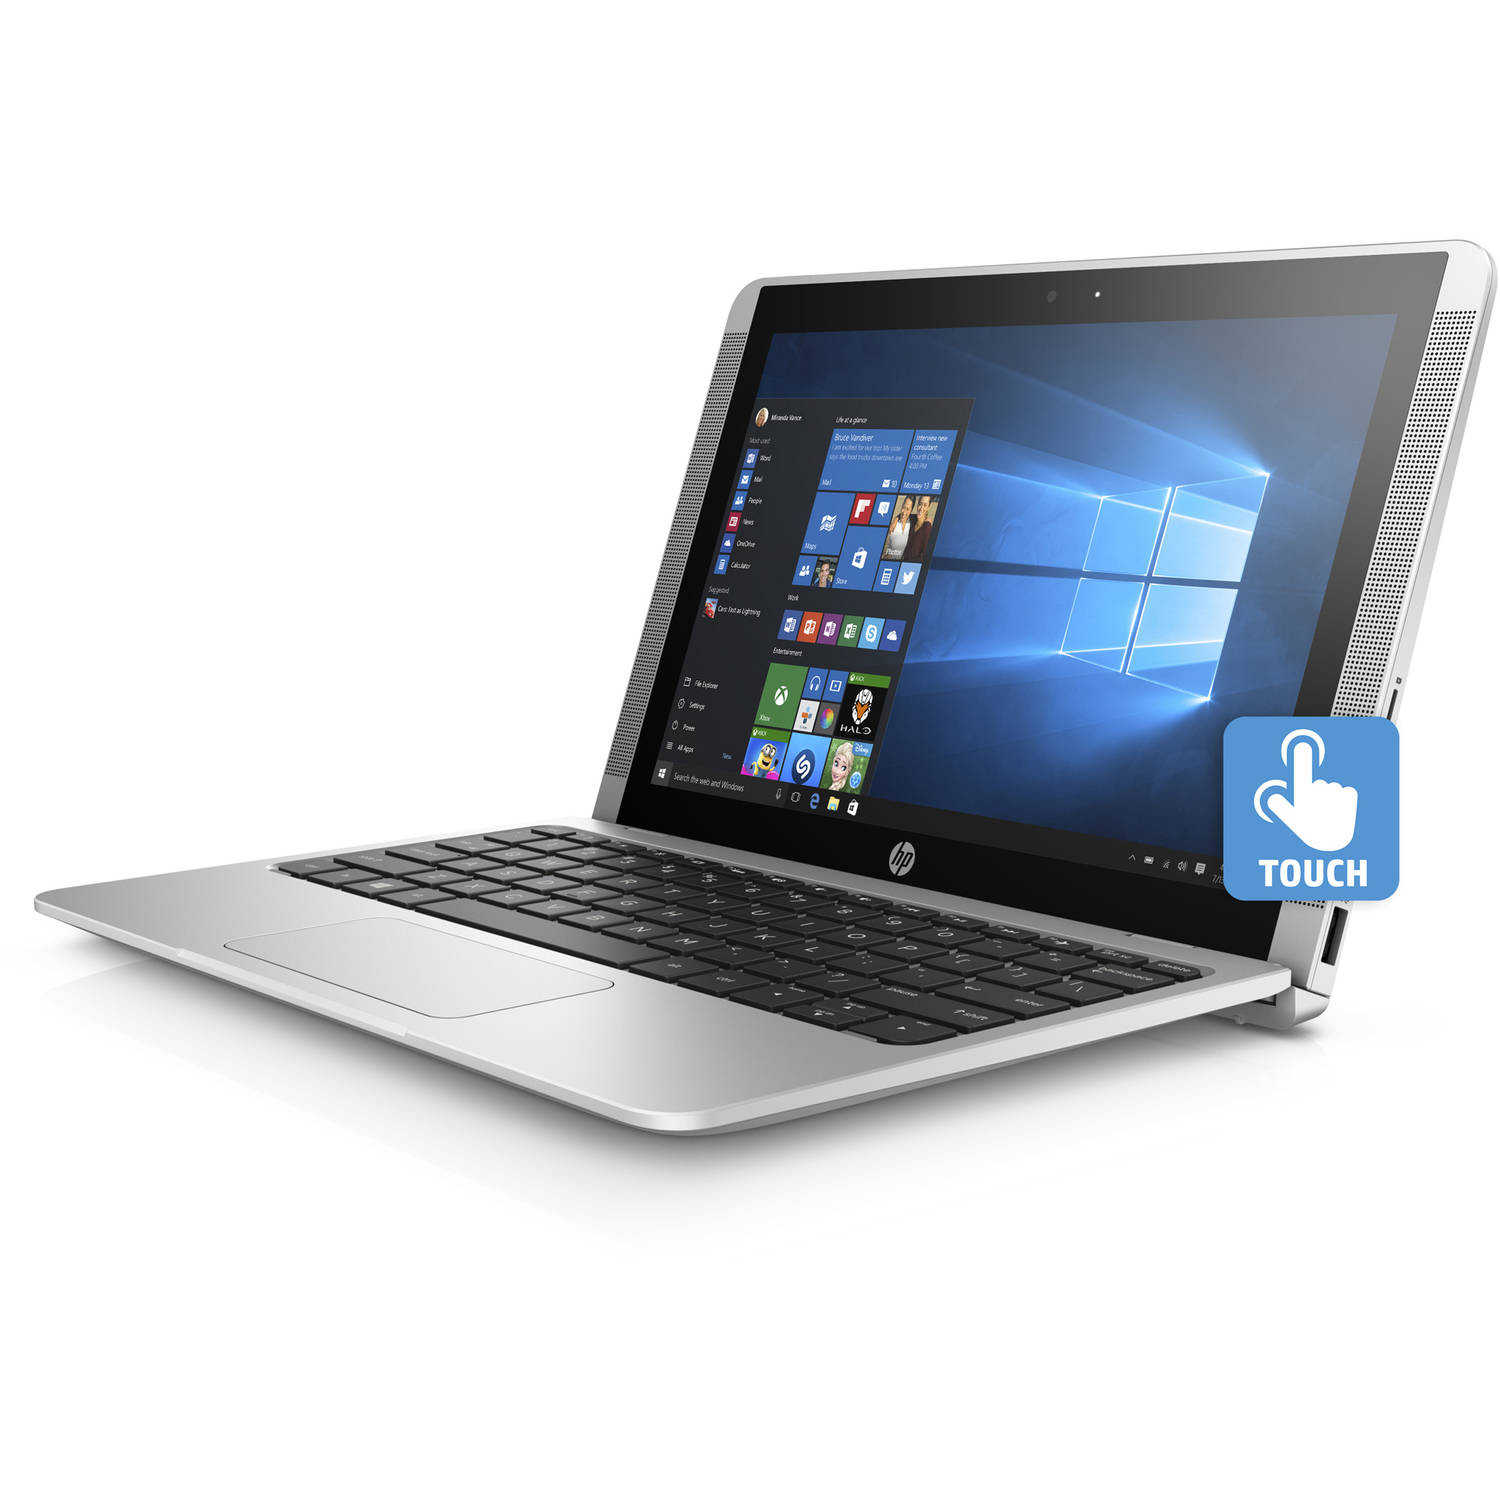 HP x2 10-p020nr 10.1' Laptop, Touchscreen, 2-in-1, Windows 10 Home, Intel Atom x5-Z8350 Processor, 2GB RAM, 32GB eMMC Drive